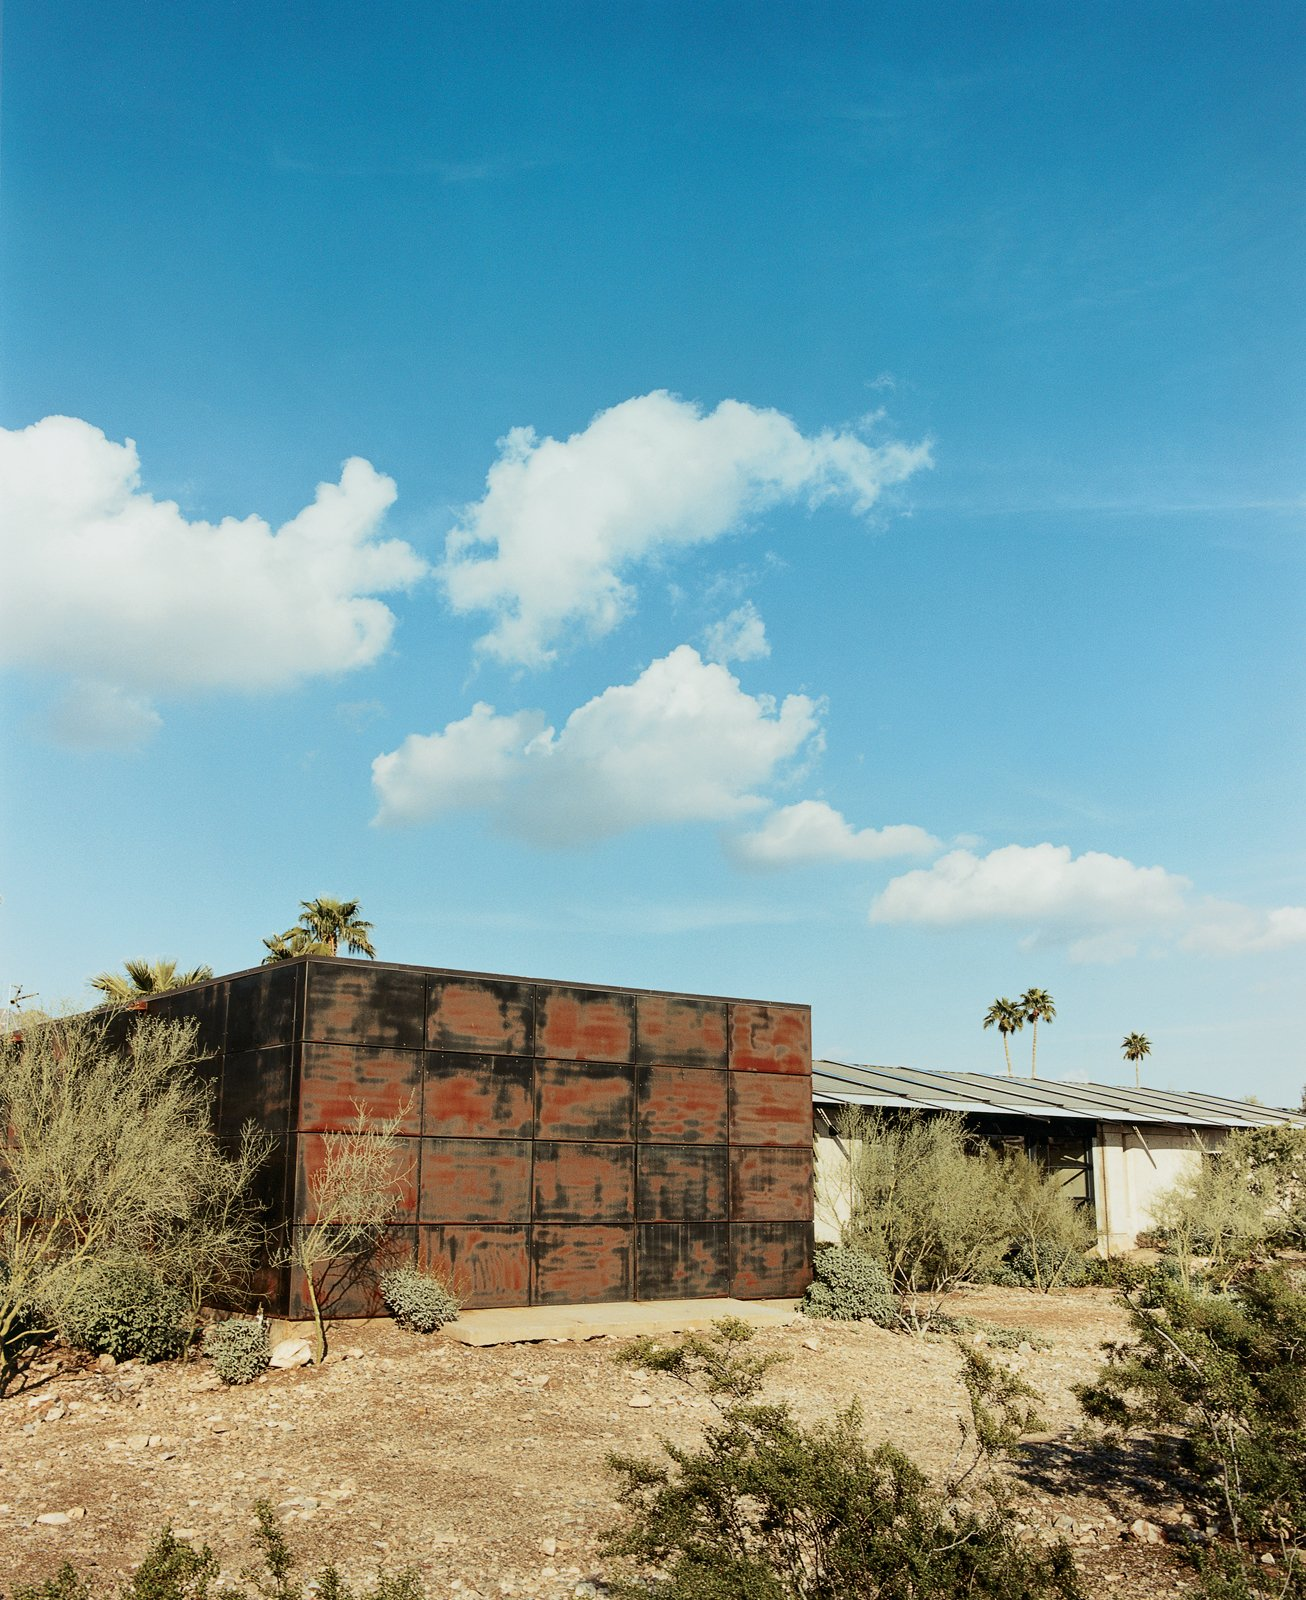 The metal shed, where Lisa Sette and her husband lived temporarily, was featured on the cover of Dwell's first issue.  Desert Homes by Heather Corcoran from Love's Labors Found